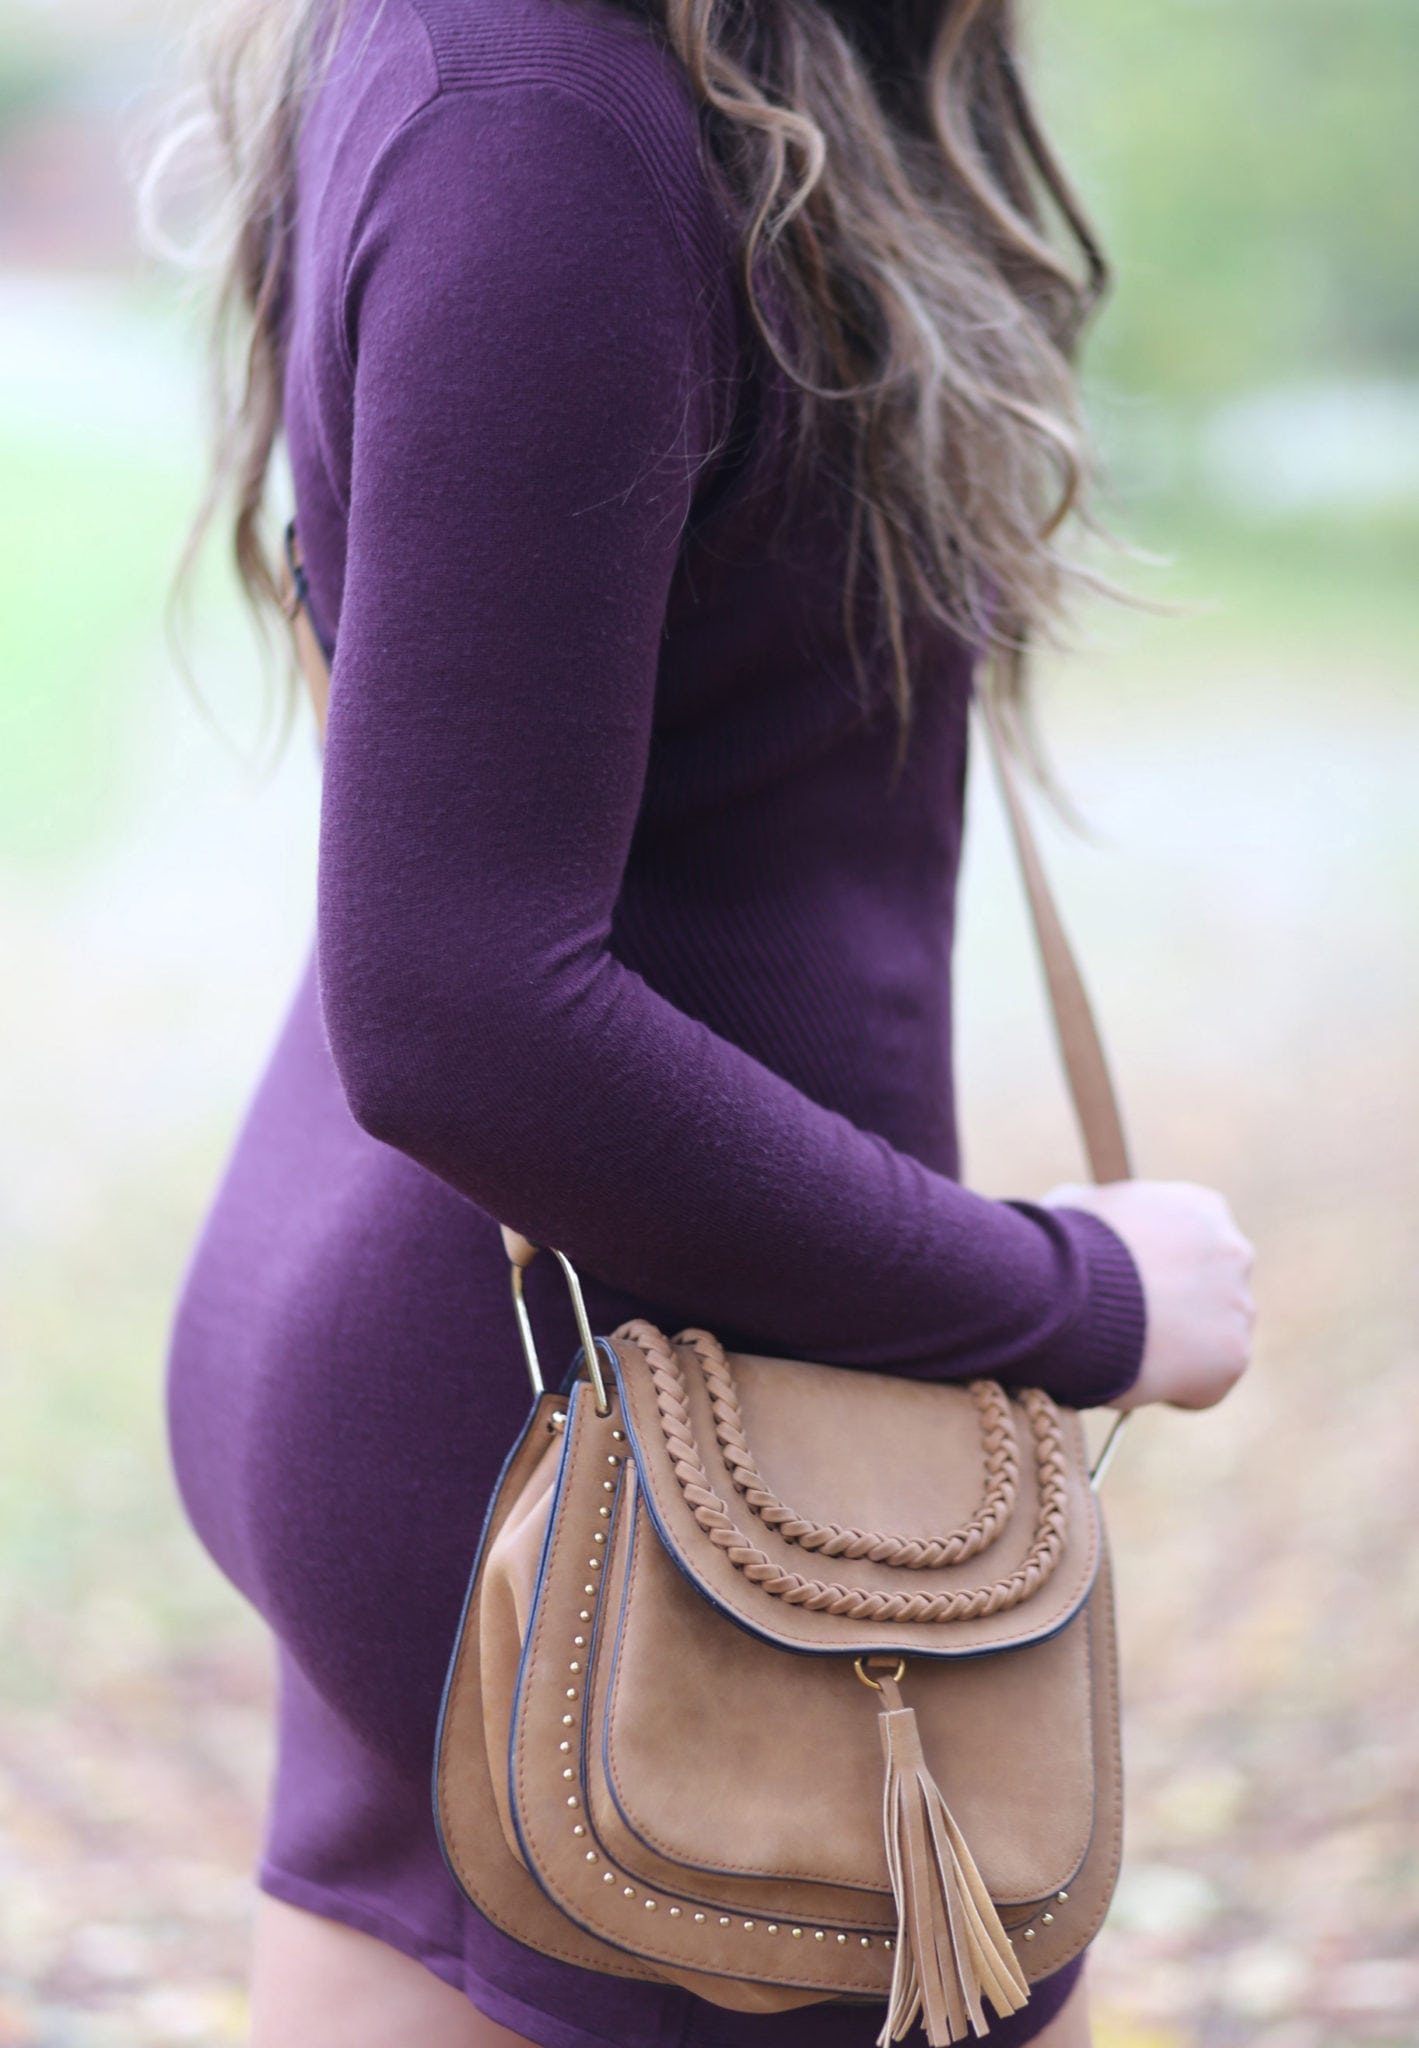 Style blogger Mash Elle shares a cute purple flattering fall dress